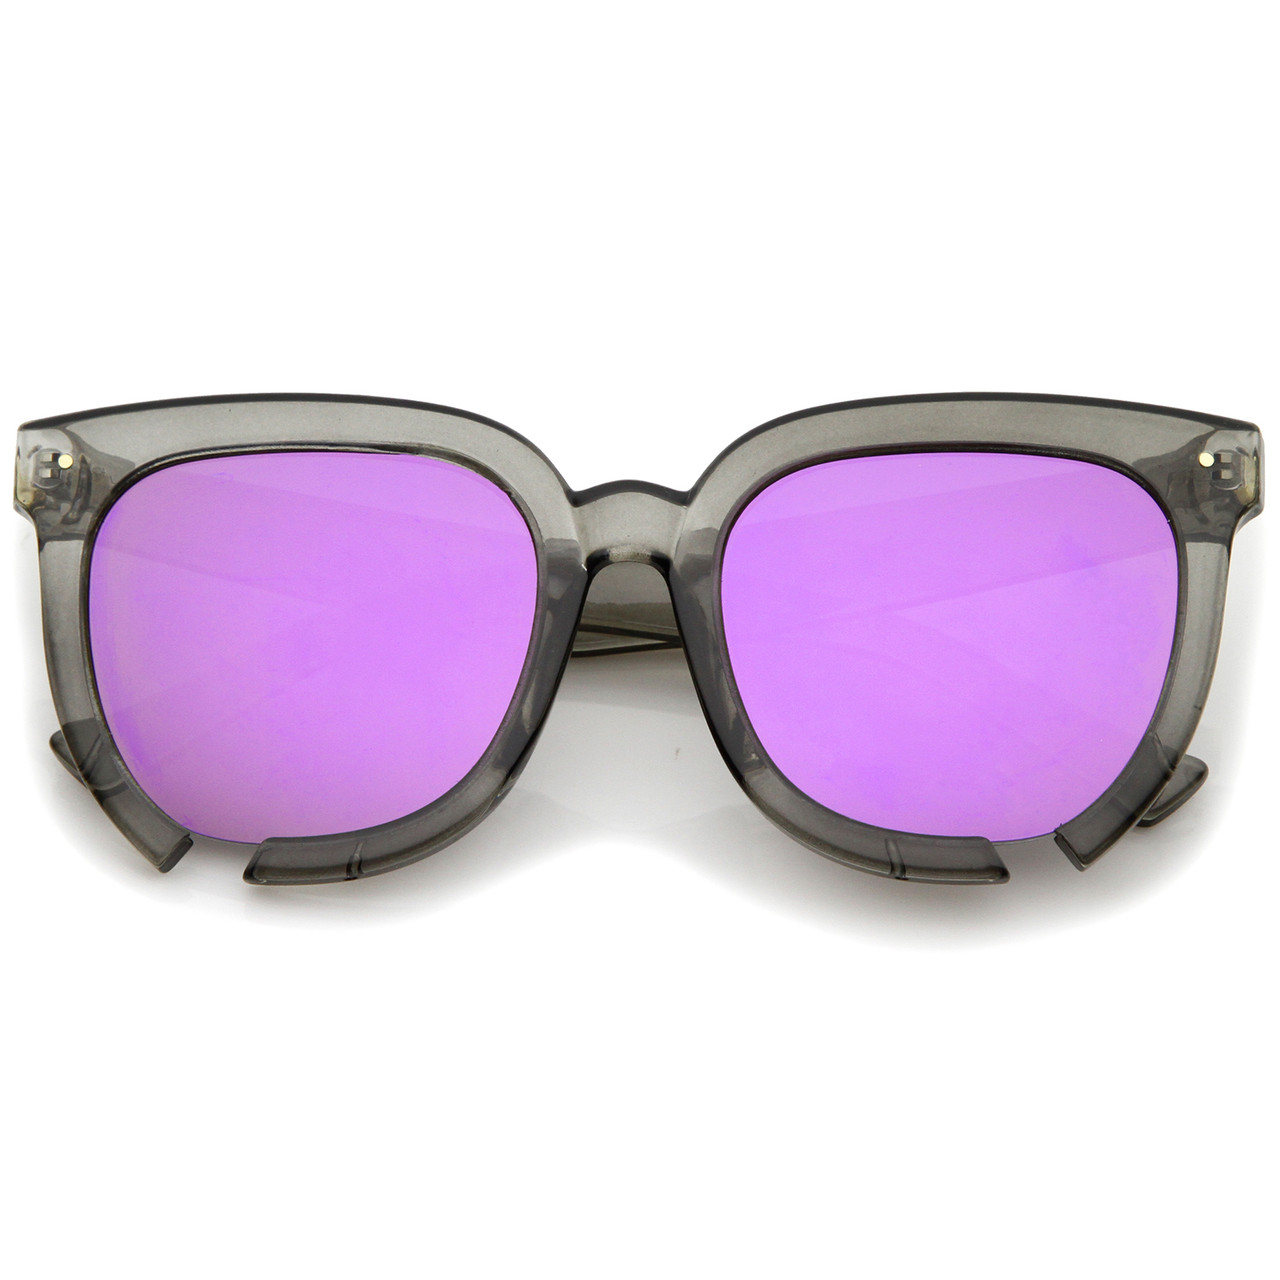 6e7fbfc48 Oversize Notch Detail Square Colored Mirror Flat Lens Horn Rimmed Sunglasses  54mm